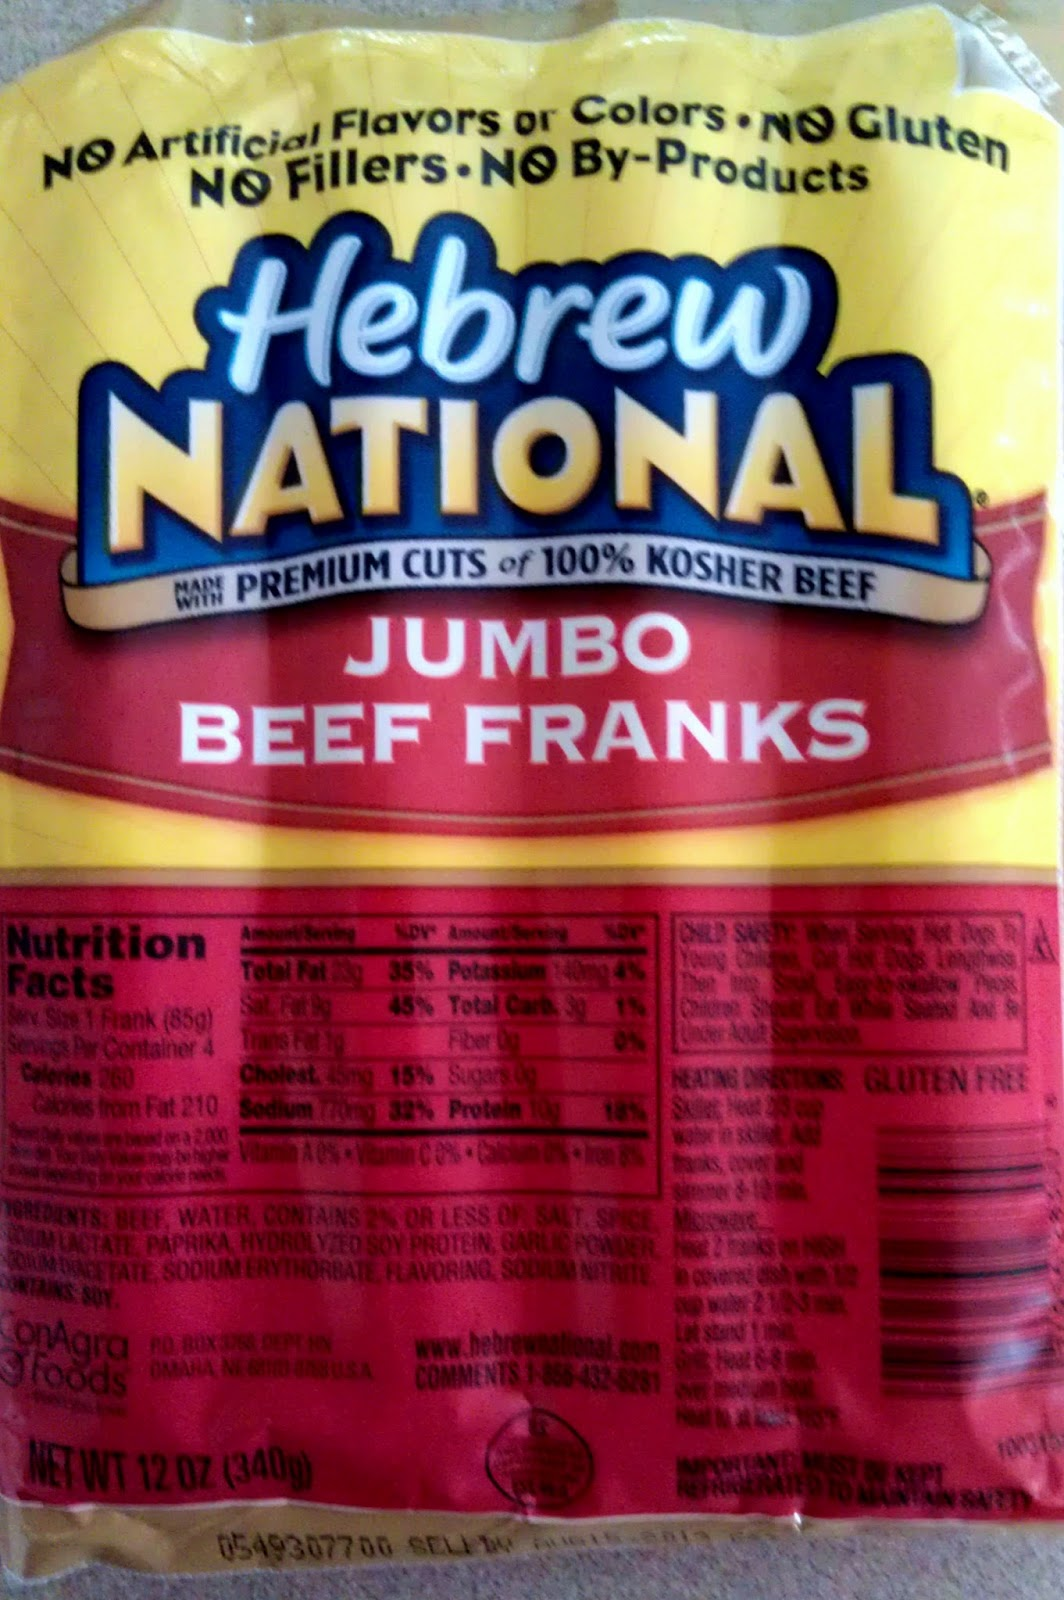 Hebrew National Light Hot Dogs Nutrition